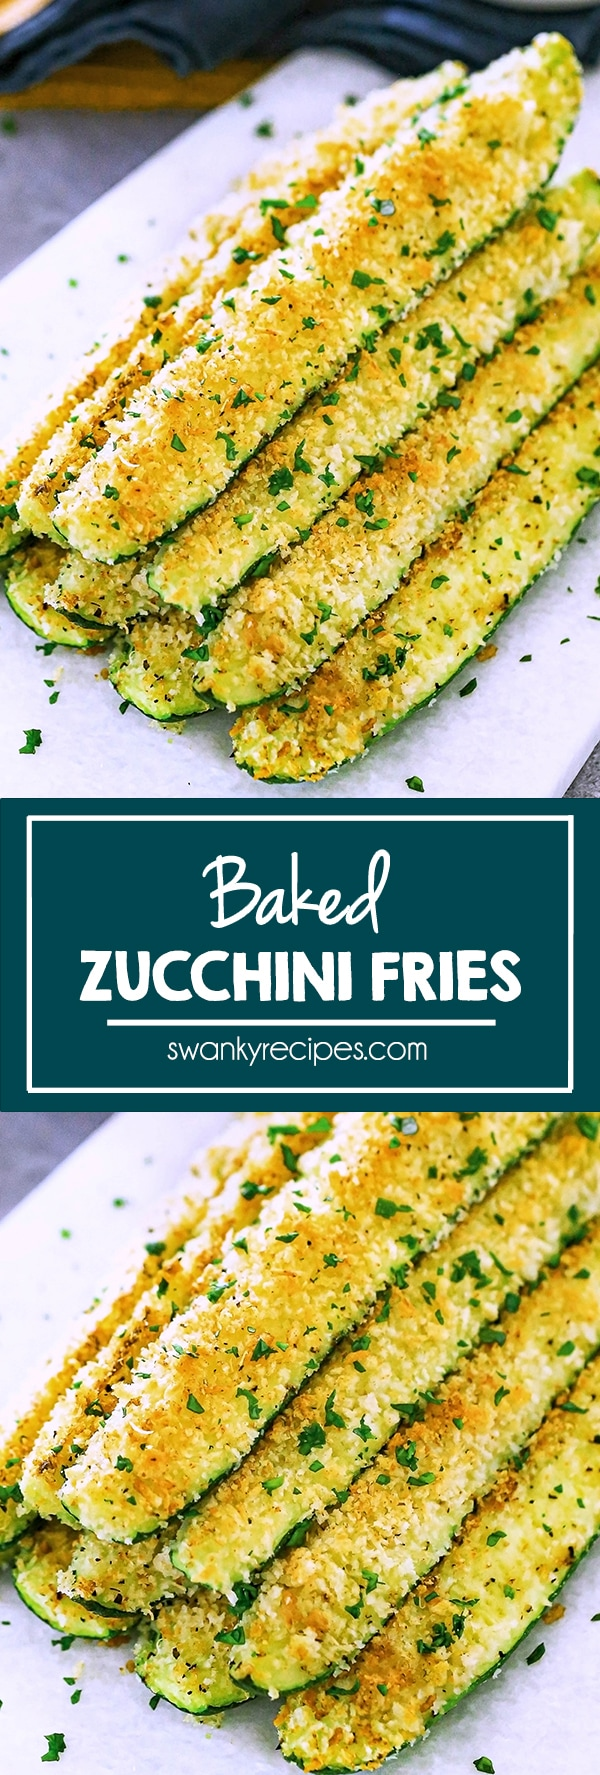 Baked Zucchini Sticks - zucchini sticks with a golden brown panko topping and parsley. Served on a marble platter. Text in center reads, baked zucchini fries. Second image is the same as first one, but a close up image view and crop.